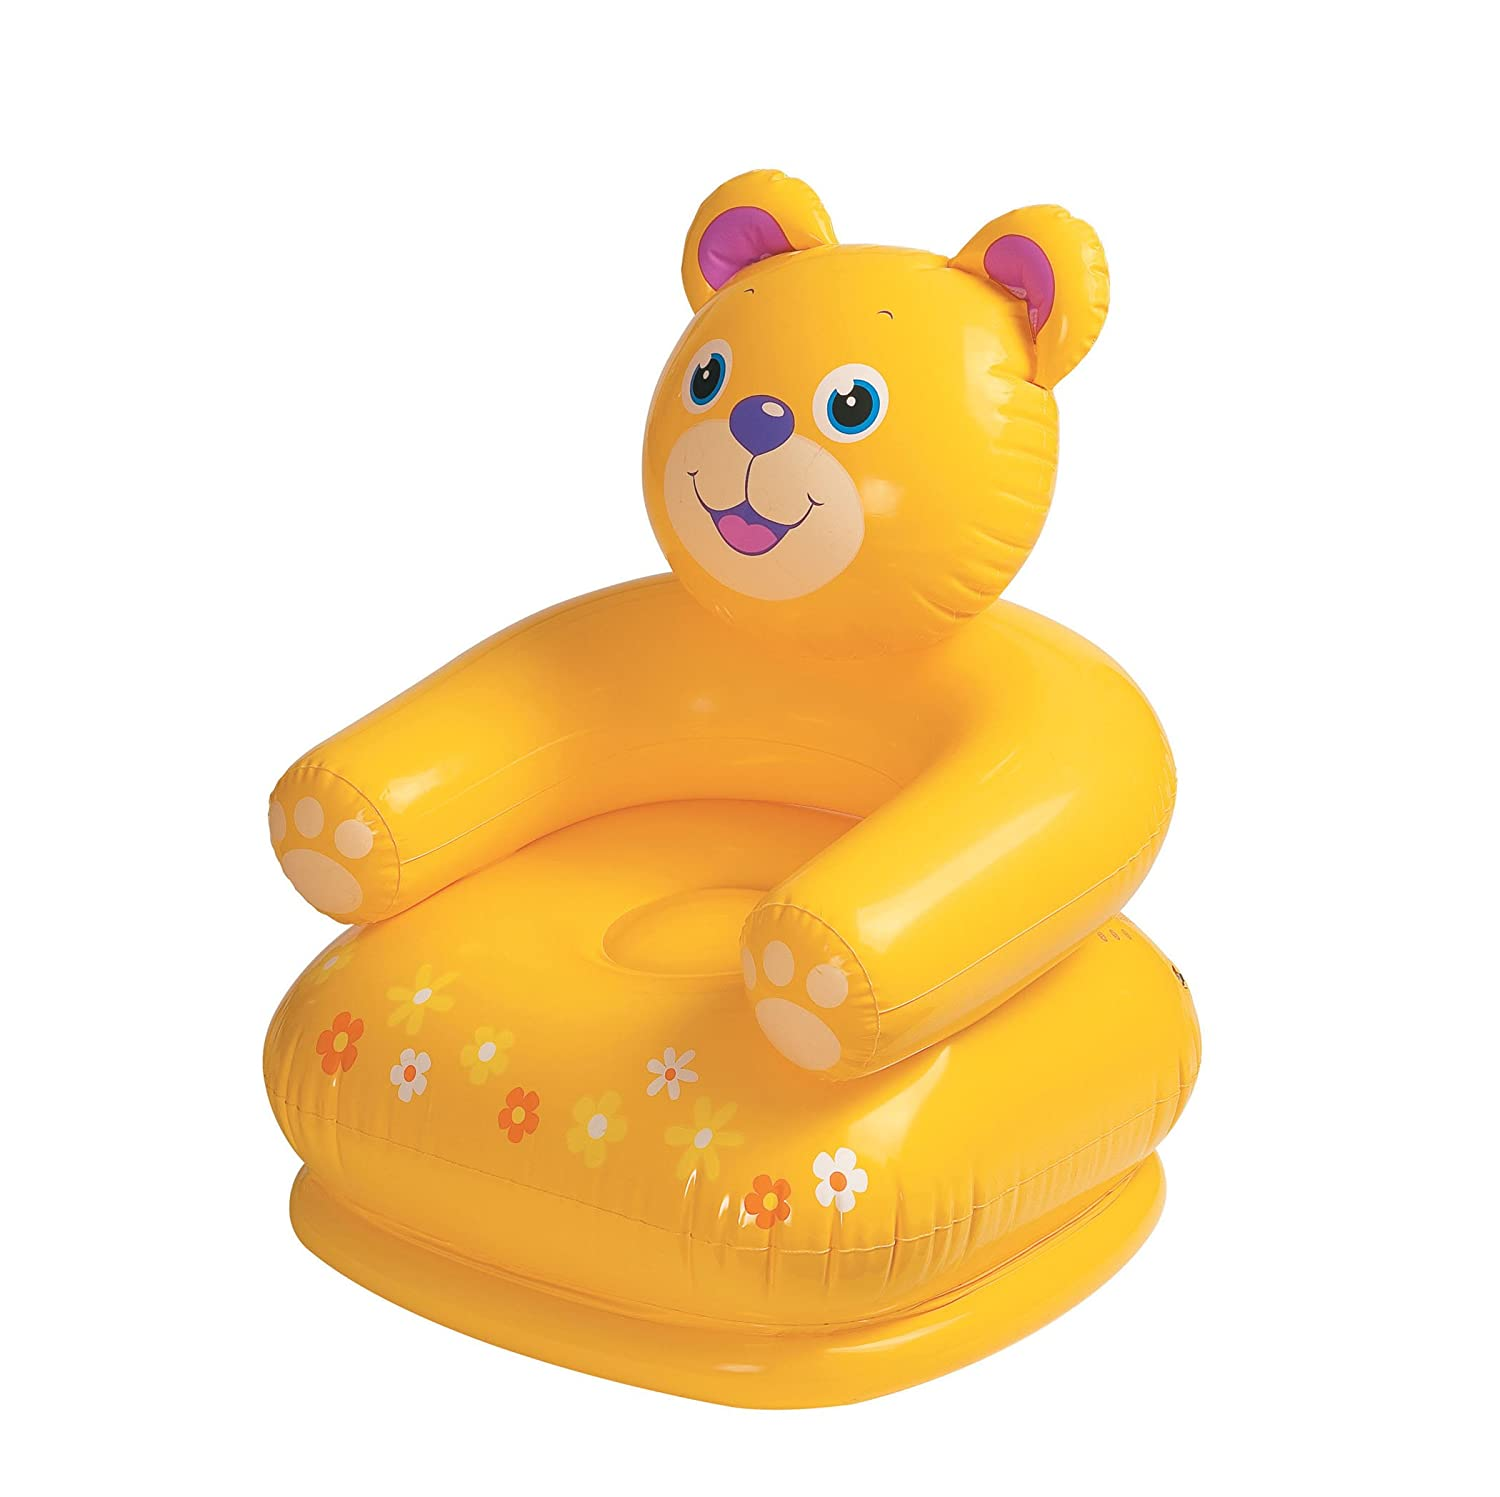 Buy Intex Happy Animal Chair Assortment   Dog, Multi Color Online At Low  Prices In India   Amazon.in